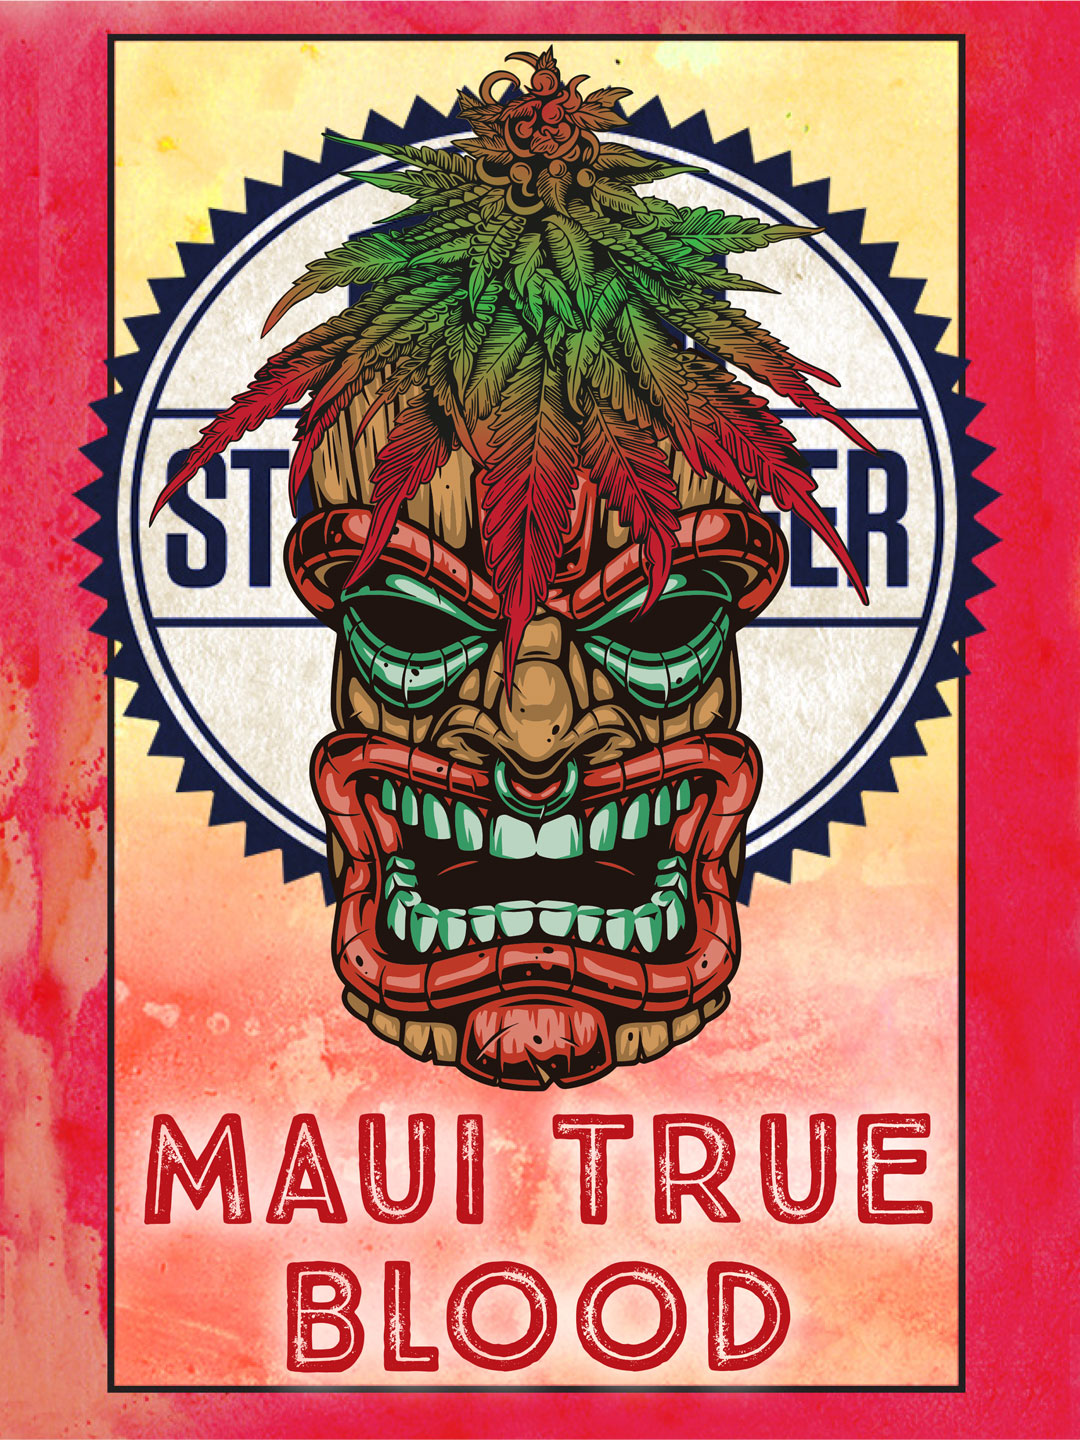 Sticky-Fingers-Seeds-Maui-True-Blood-poster